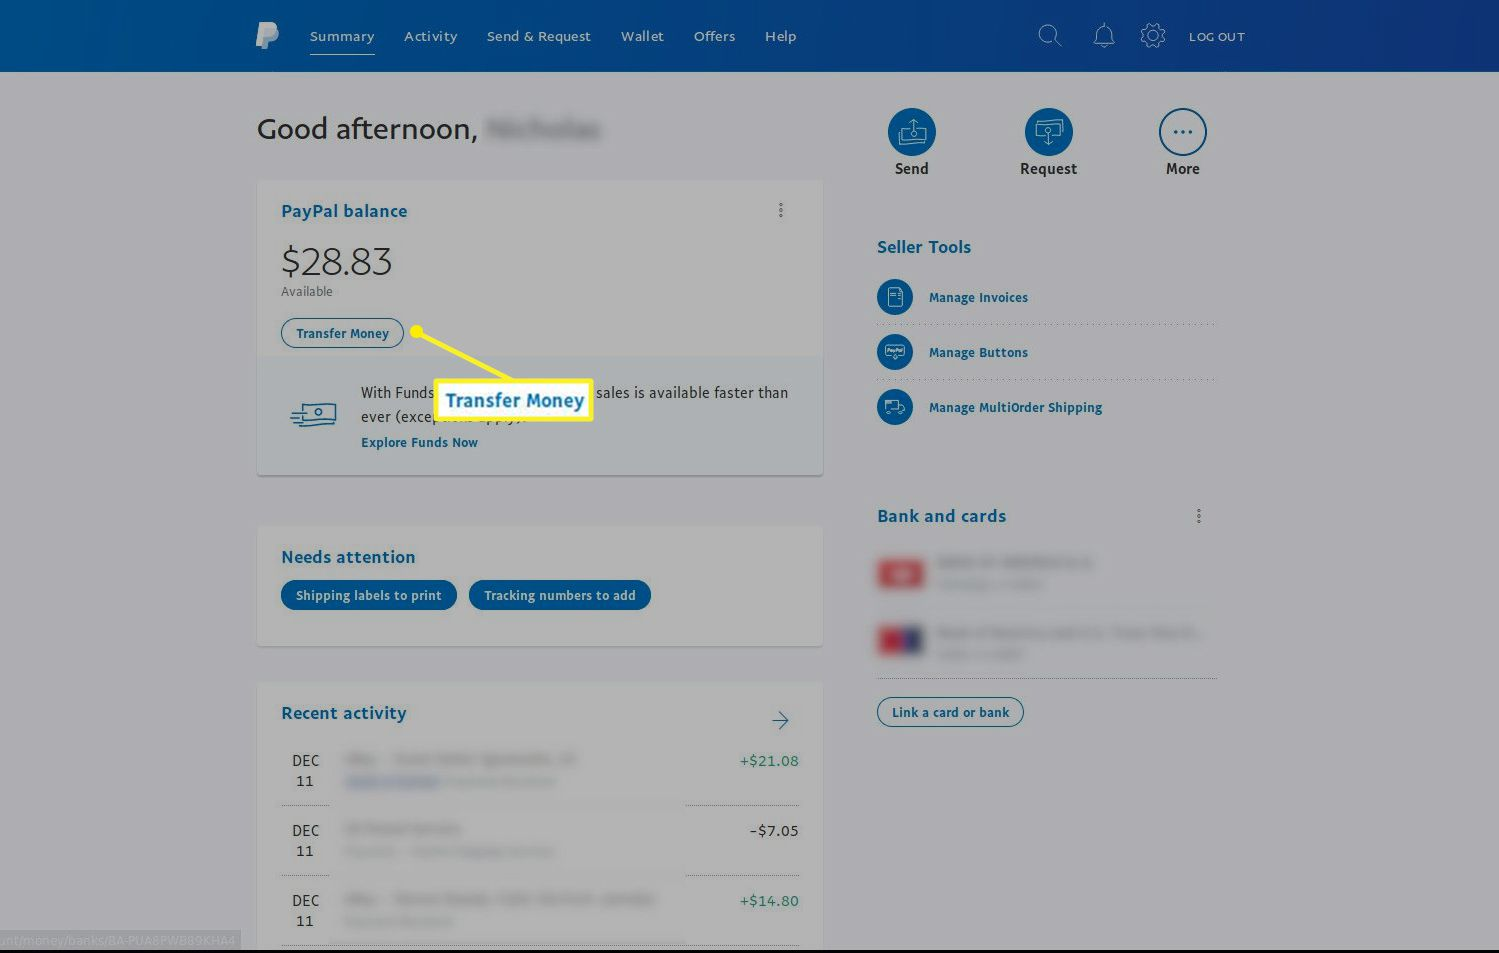 PayPal summary screen with Transfer Money highlighted